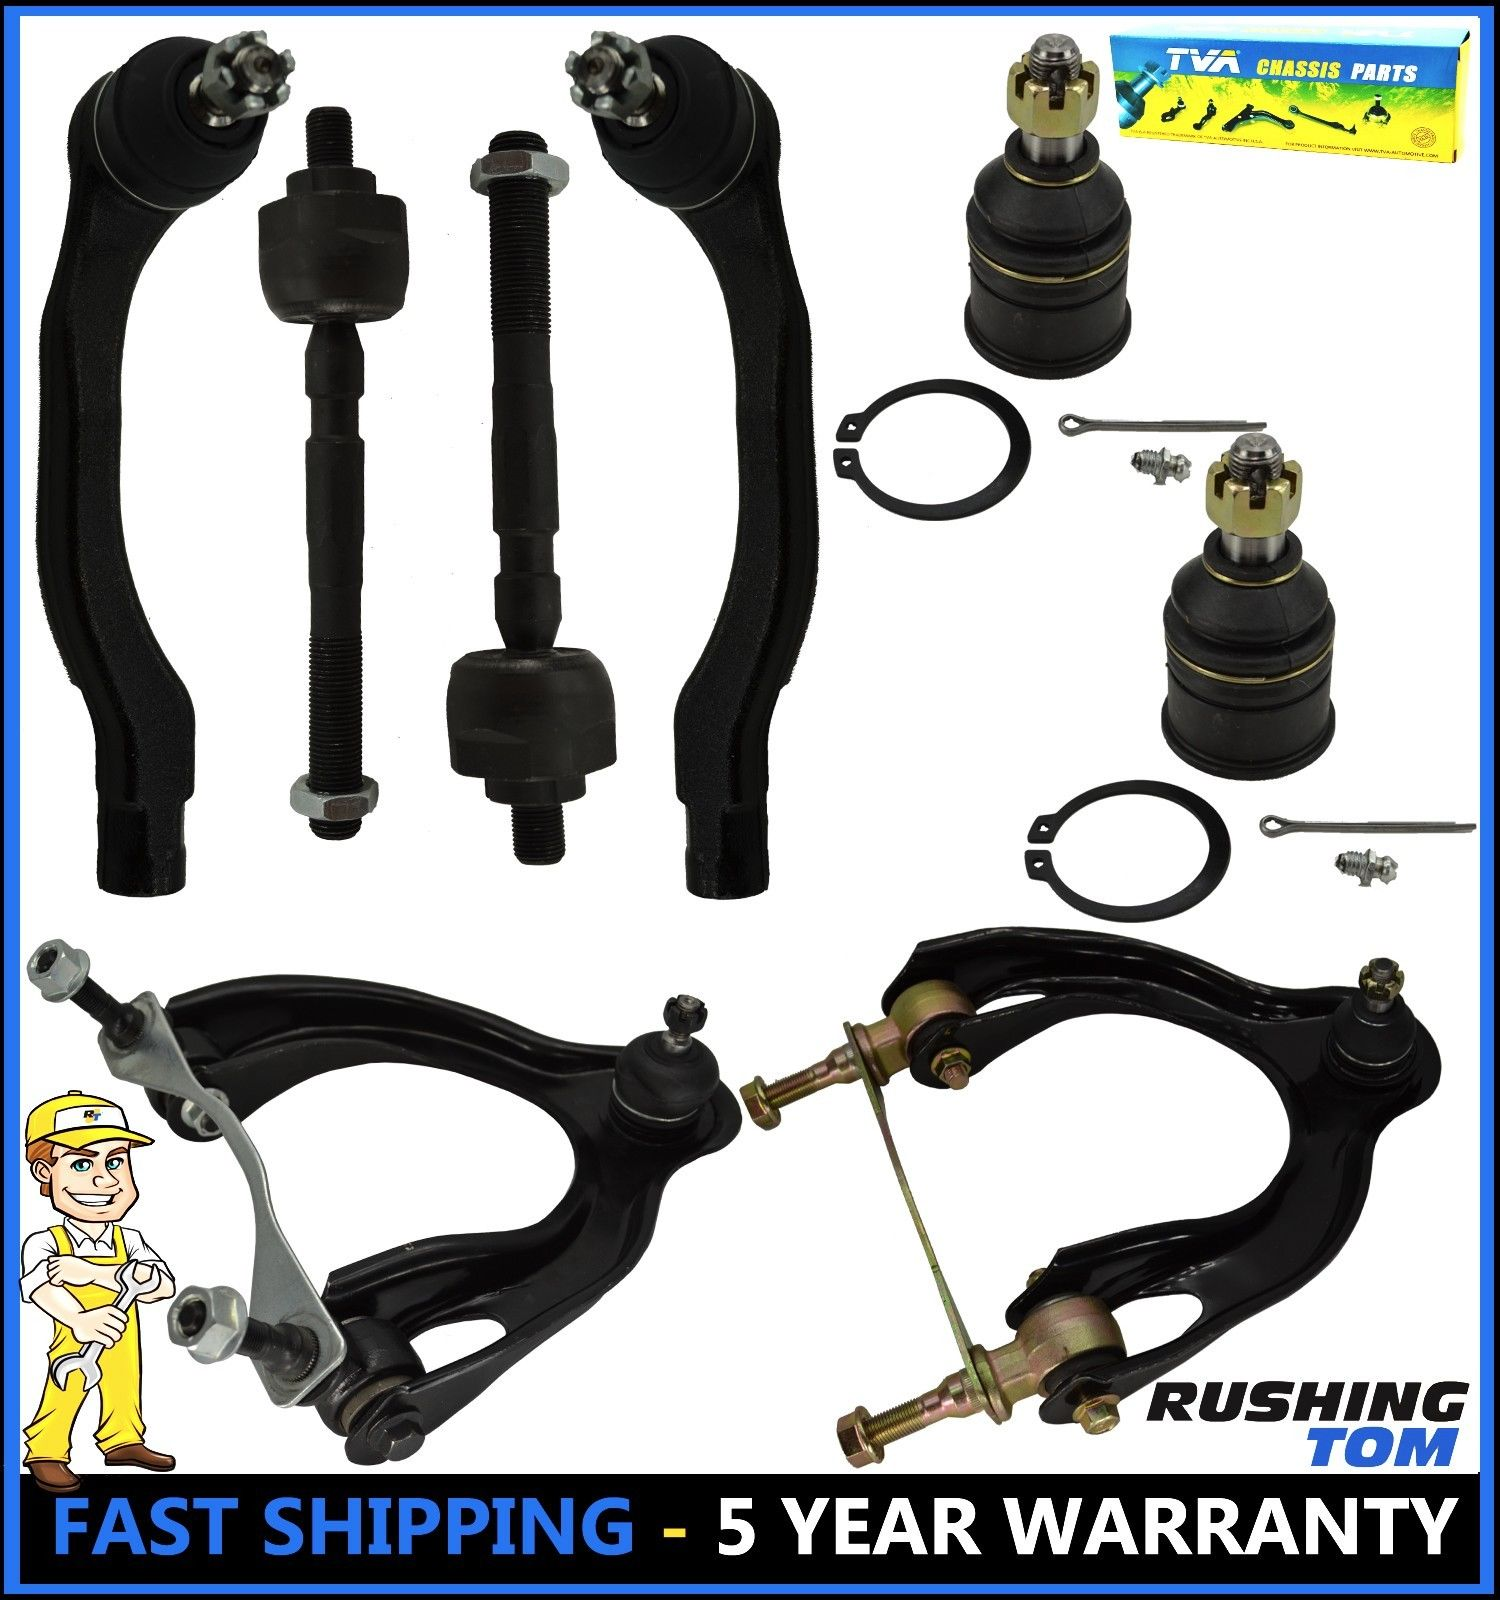 10 Pc Suspension Kit for Integra Civic /& Civic del Sol Upper//Lower Ball Joints